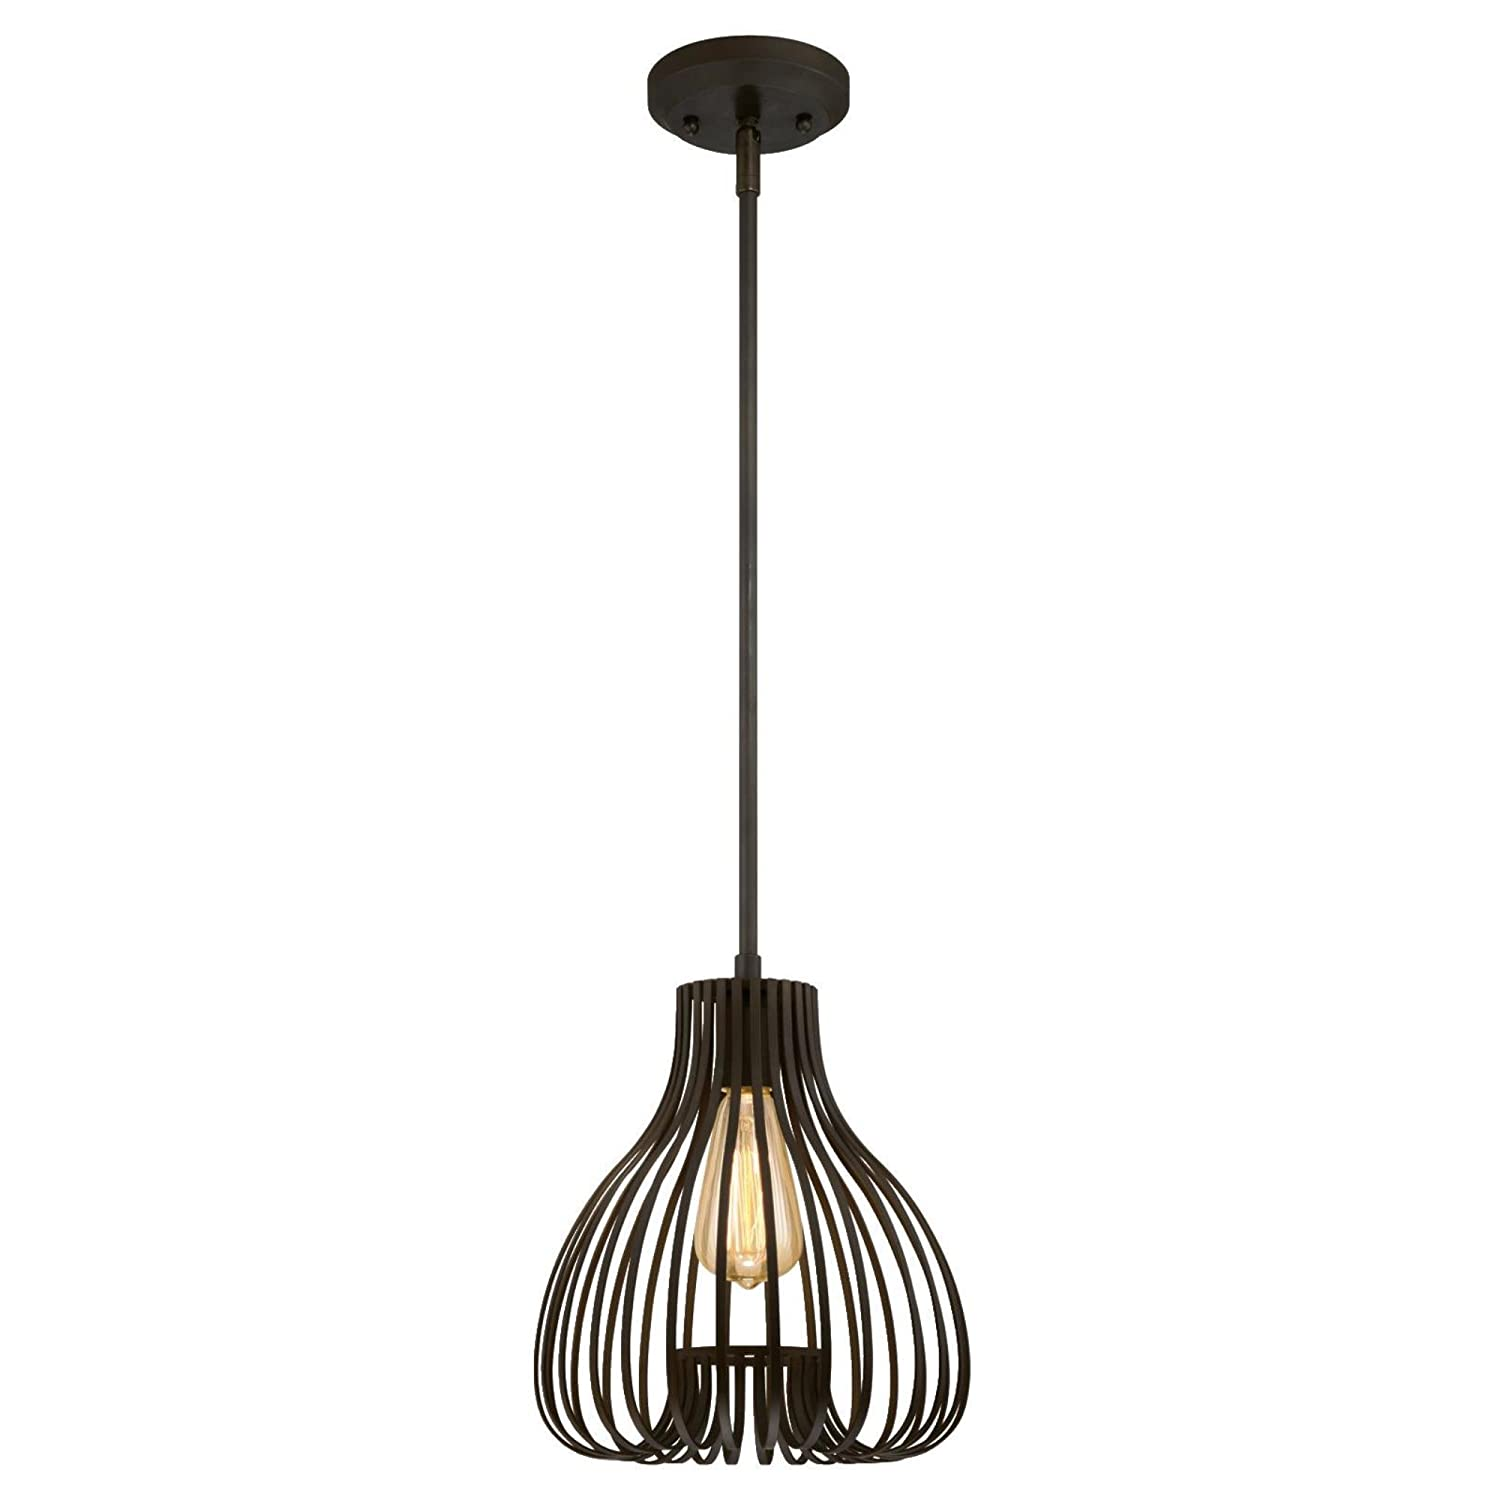 Westinghouse lighting 6345200 one light pendant old rubbed bronze finish with cage shade amazon com